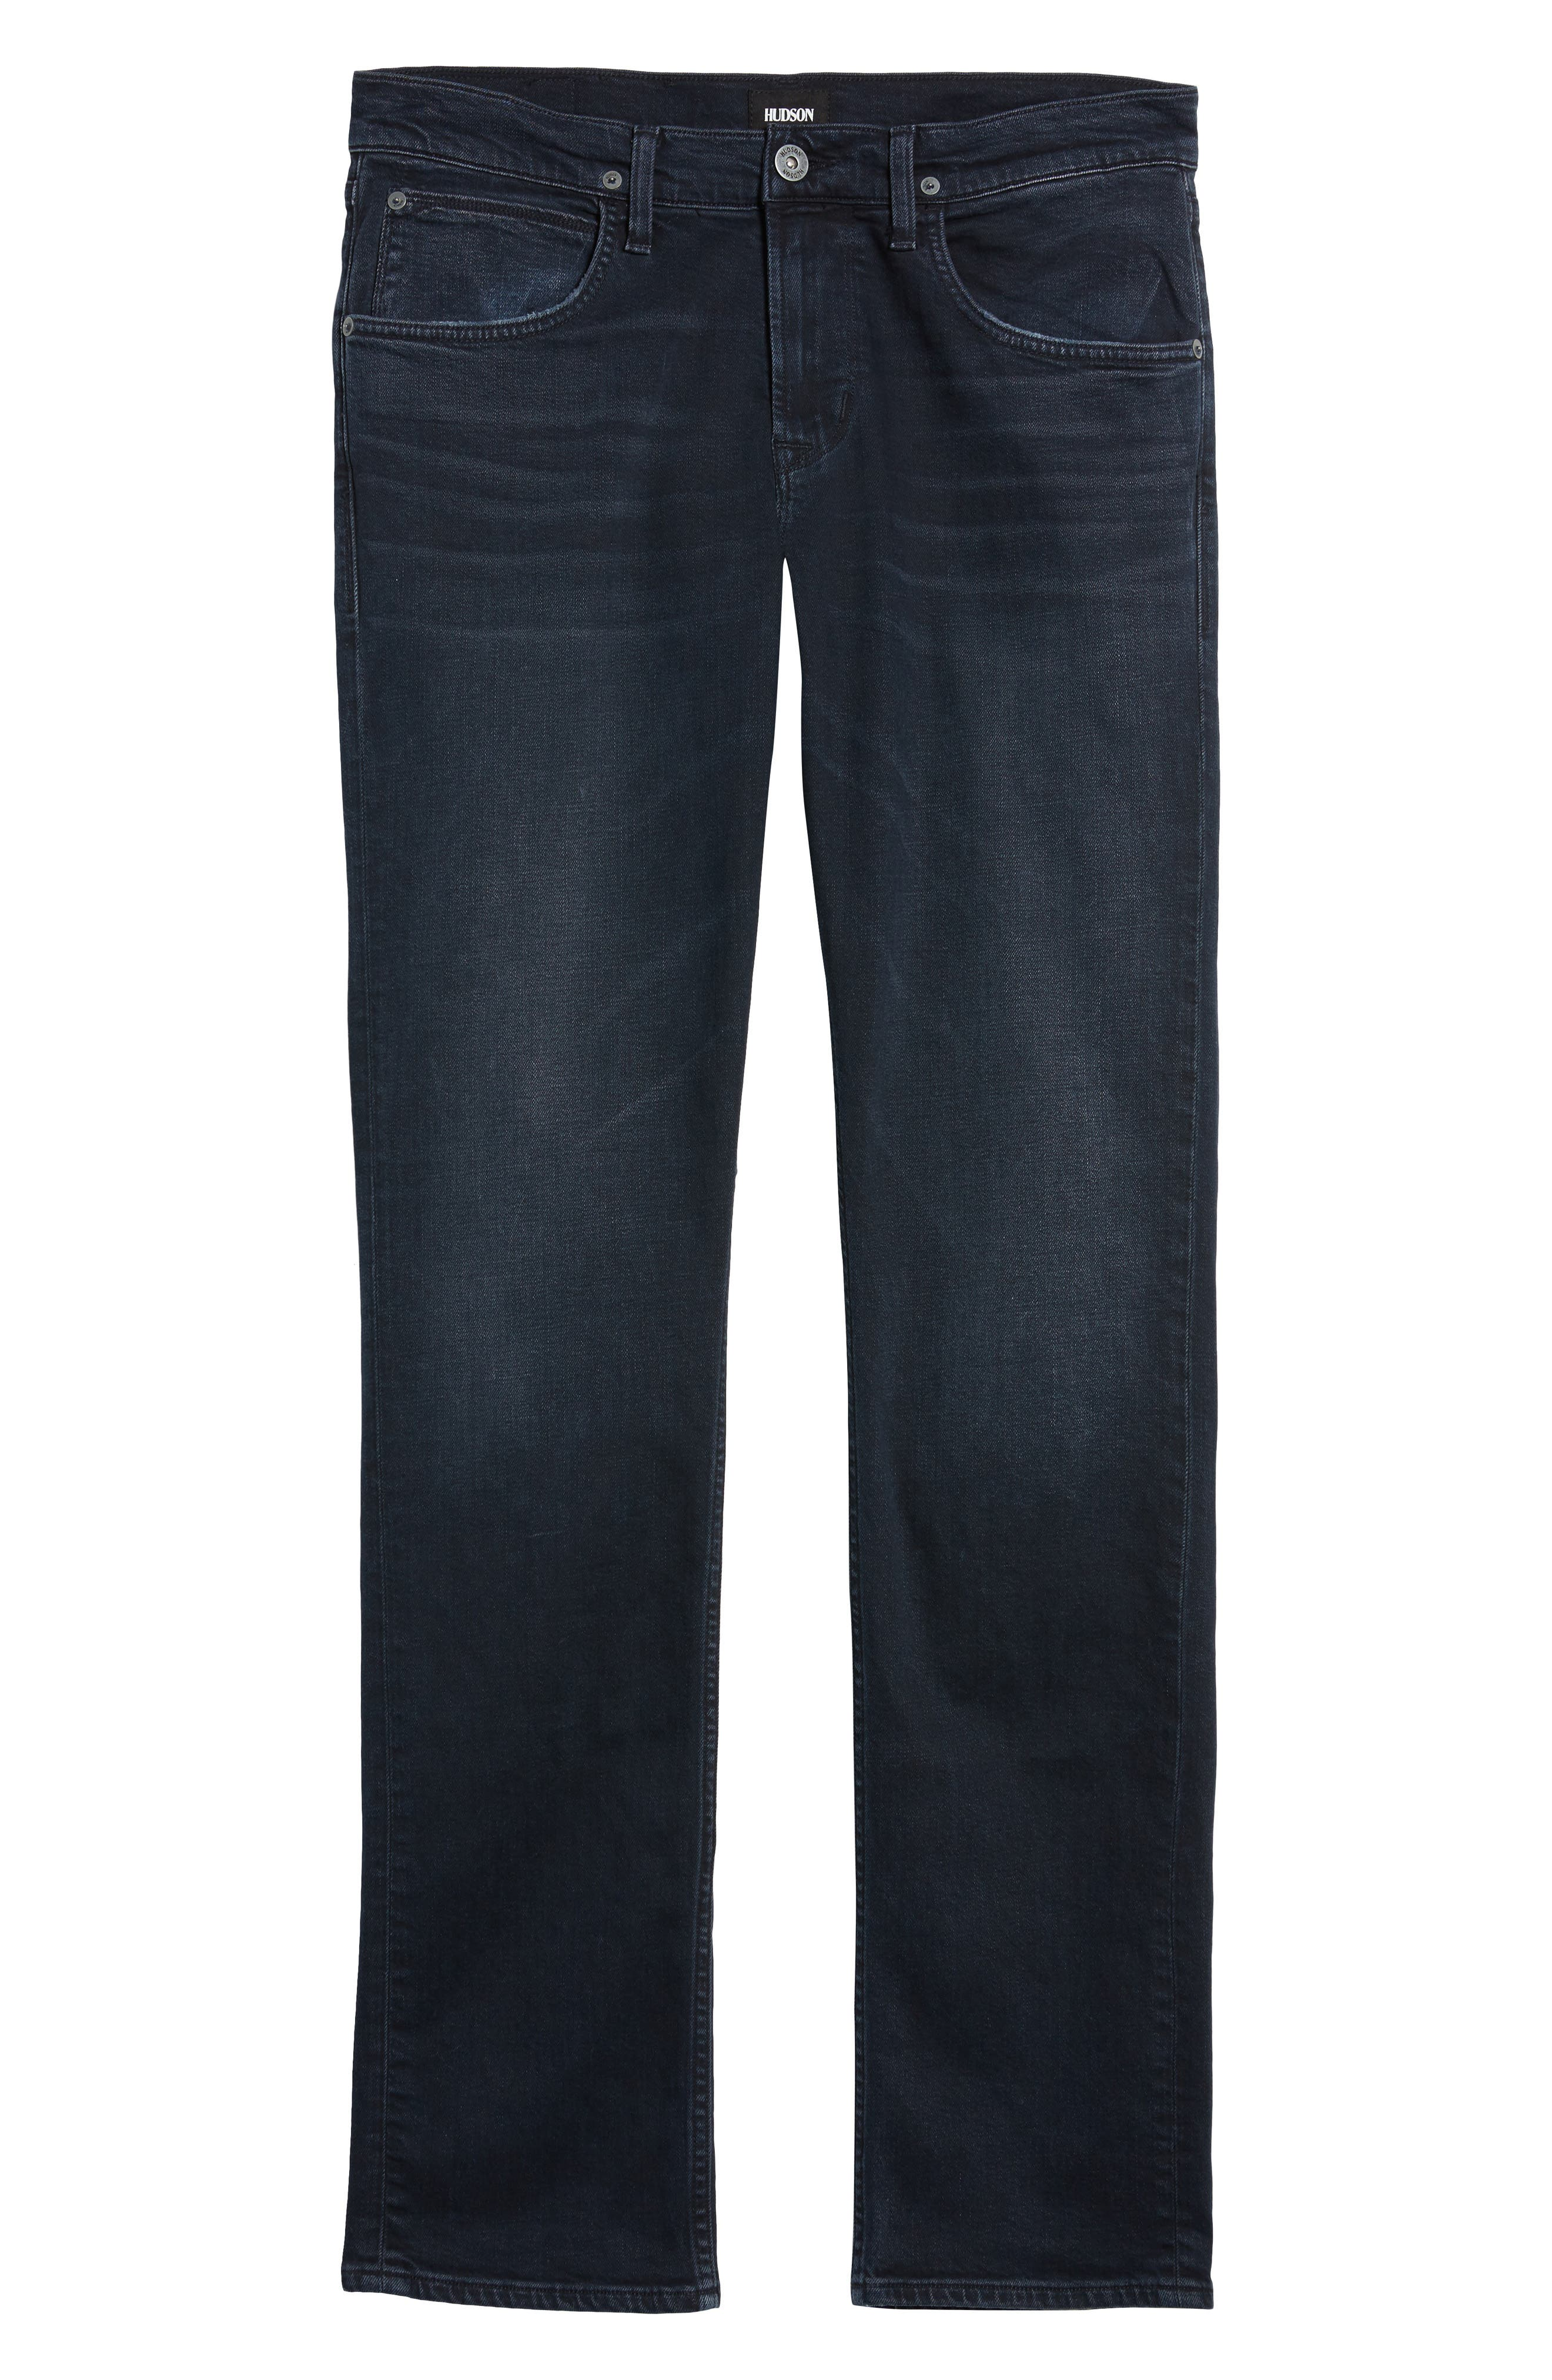 Byron Slim Straight Leg Jeans,                             Alternate thumbnail 6, color,                             404